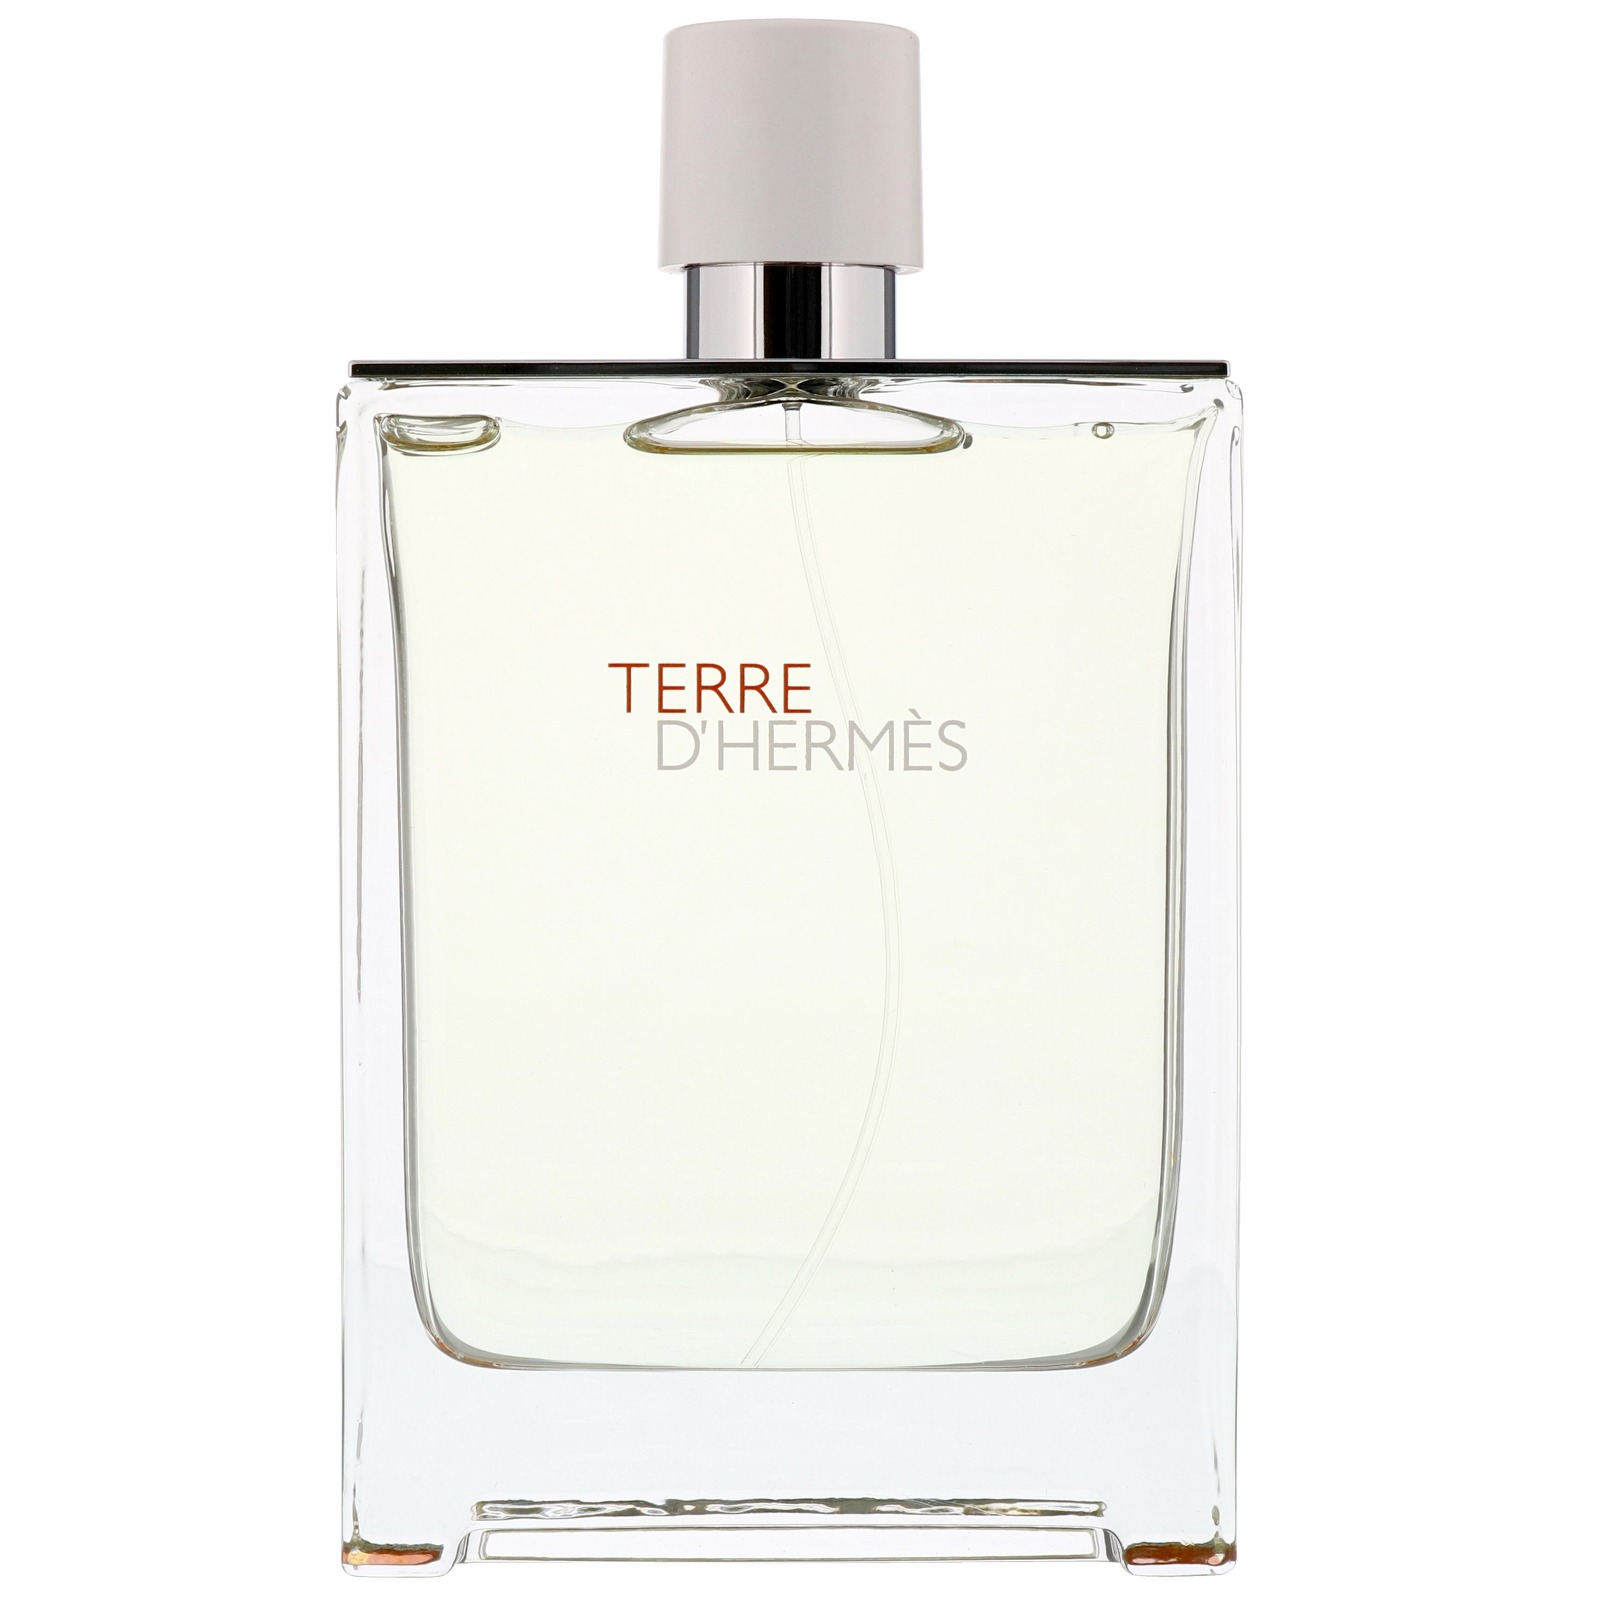 Hermes Terre Dhermes Eau Tres Fraiche De Toilette Spray 125ml D Man Parfum 75 Ml Aftershave